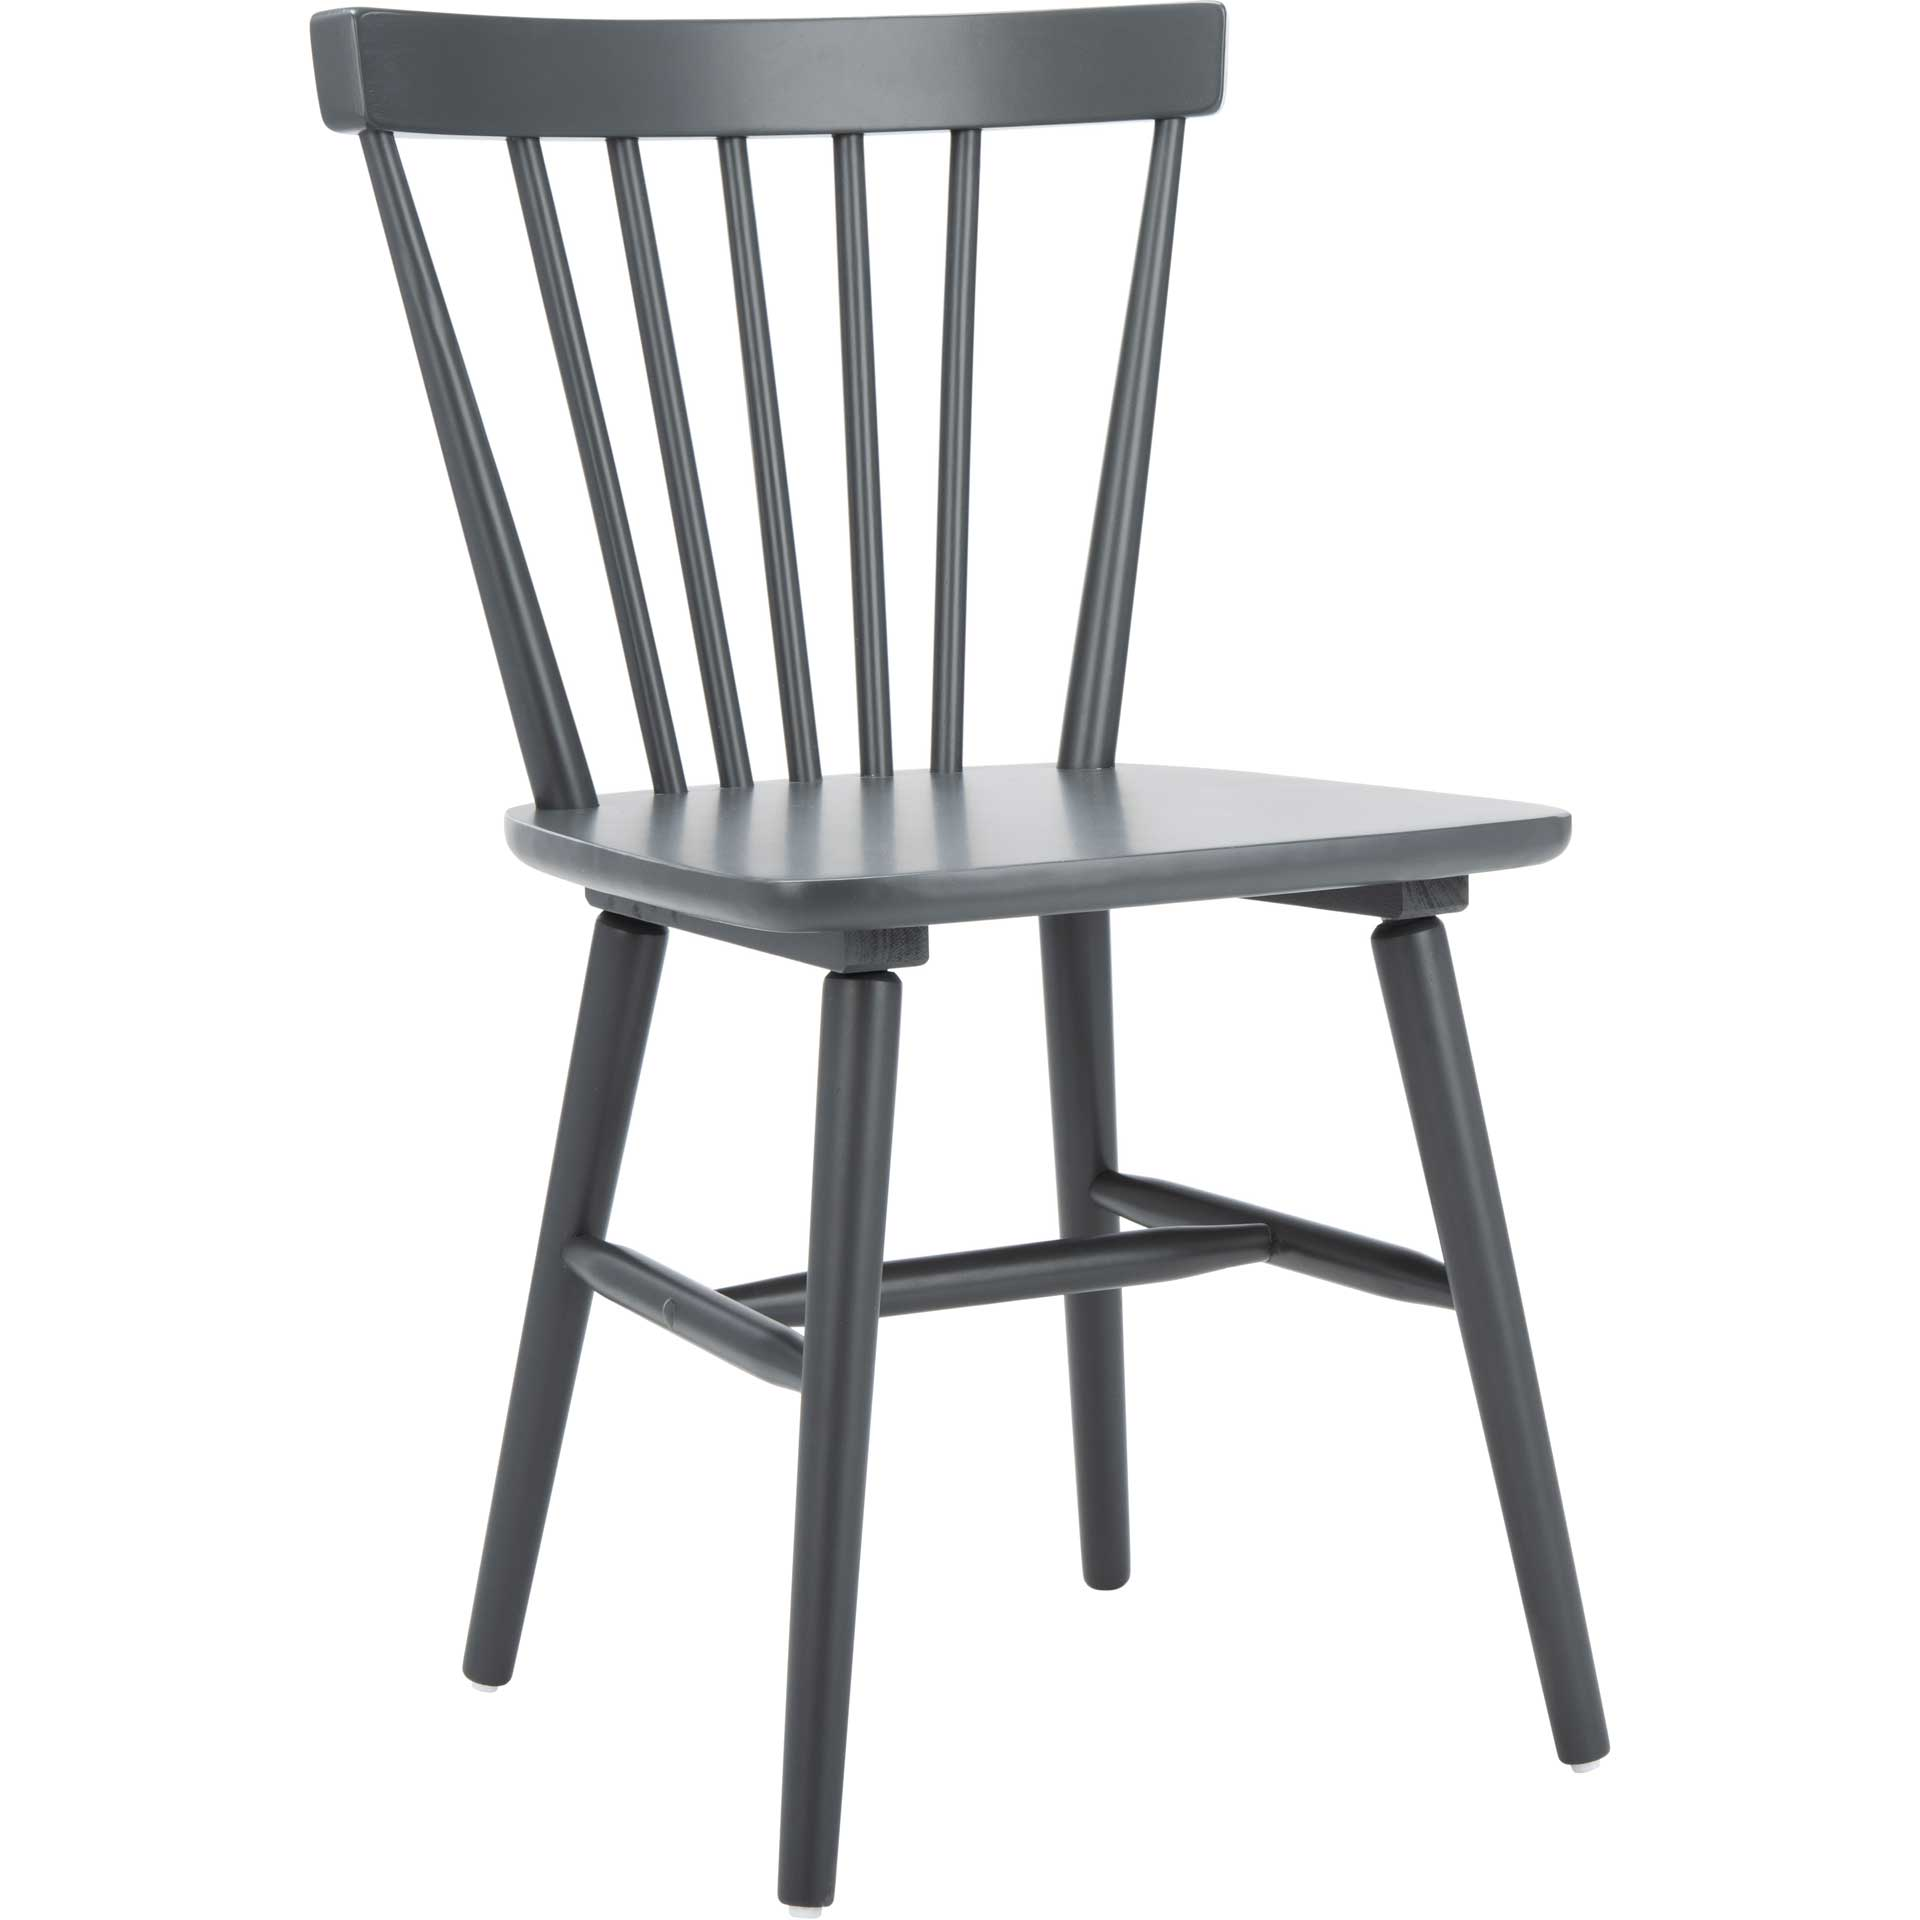 Wilder Spindle Back Dining Chair Gray (Set of 2)